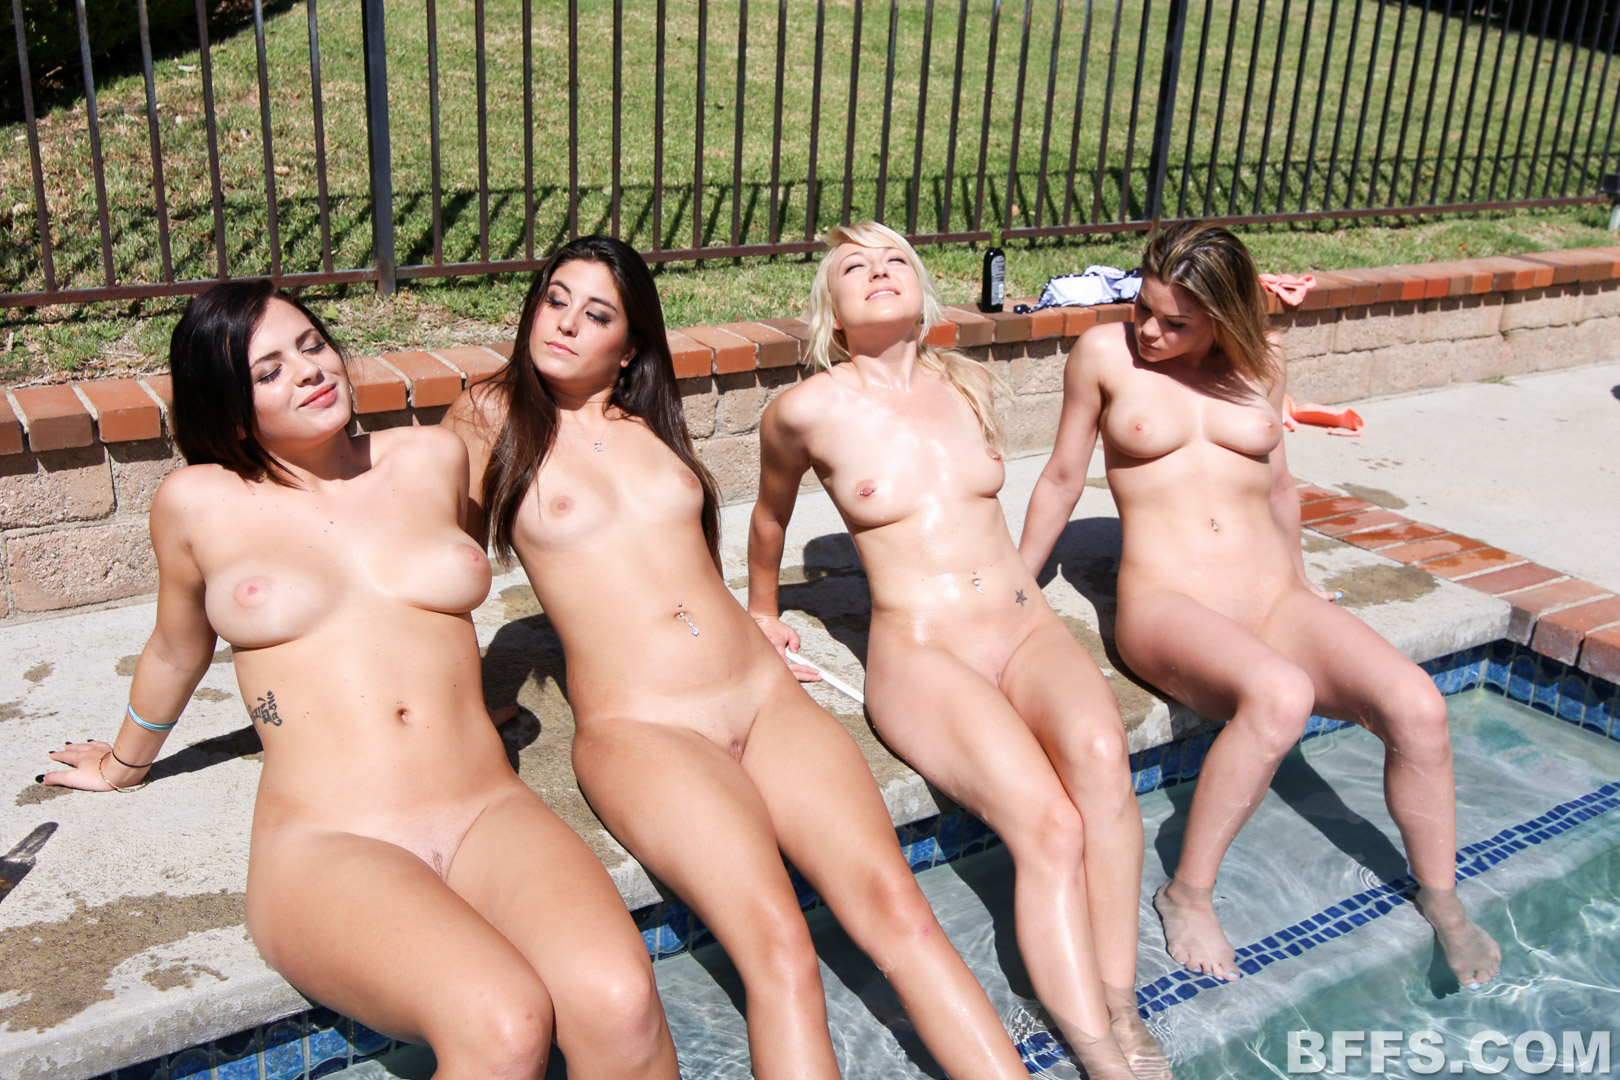 hotties-having-highschool-girls-nudist-sex-porno